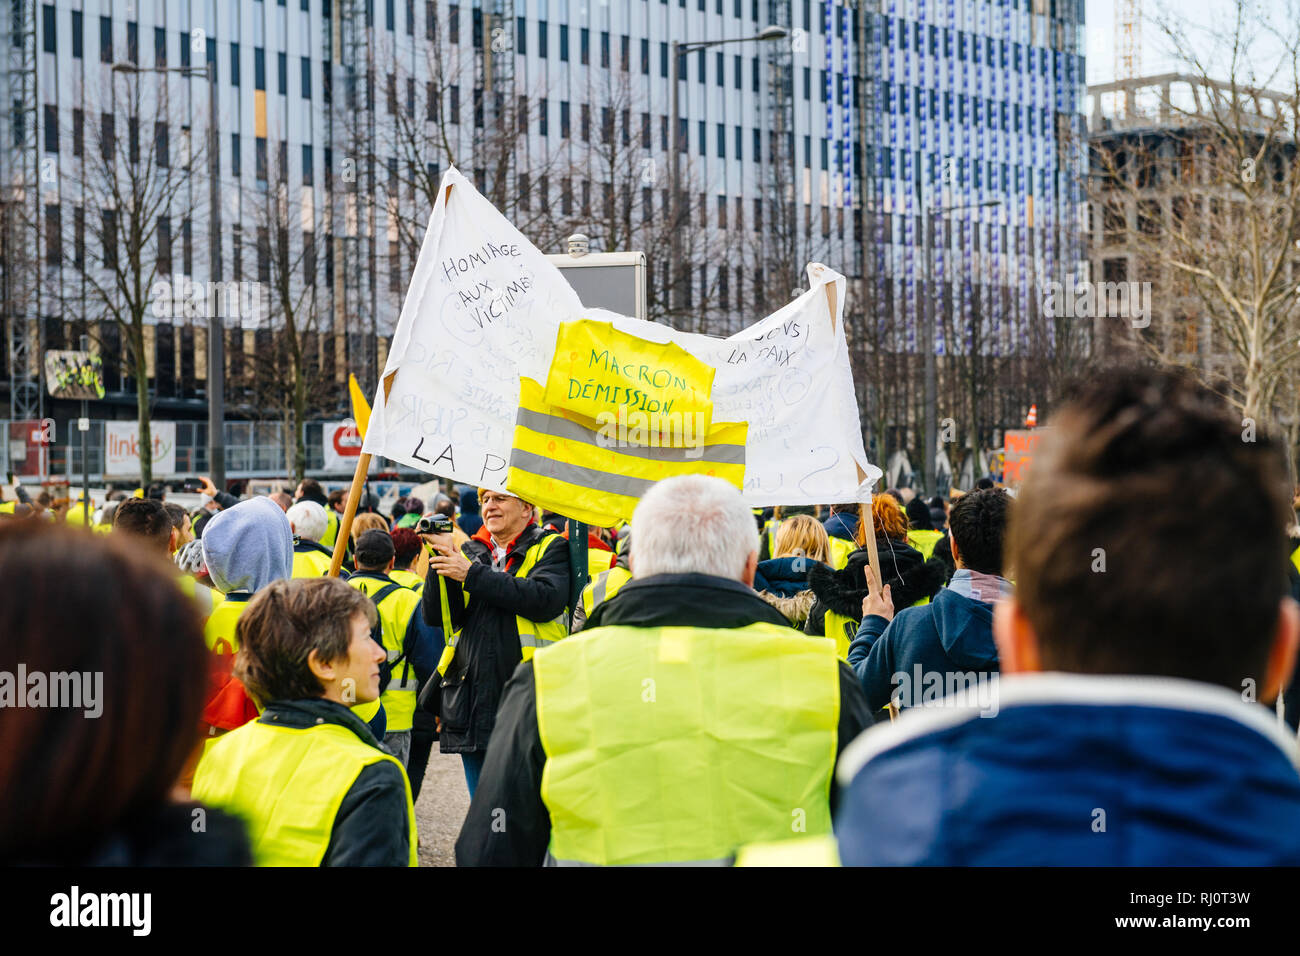 STRASBOURG, FRANCE - FEB 02, 2018: People demonstrating marching with placards during protest of Gilets Jaunes Yellow Vest placard with inscription Macron resignation  - Stock Image